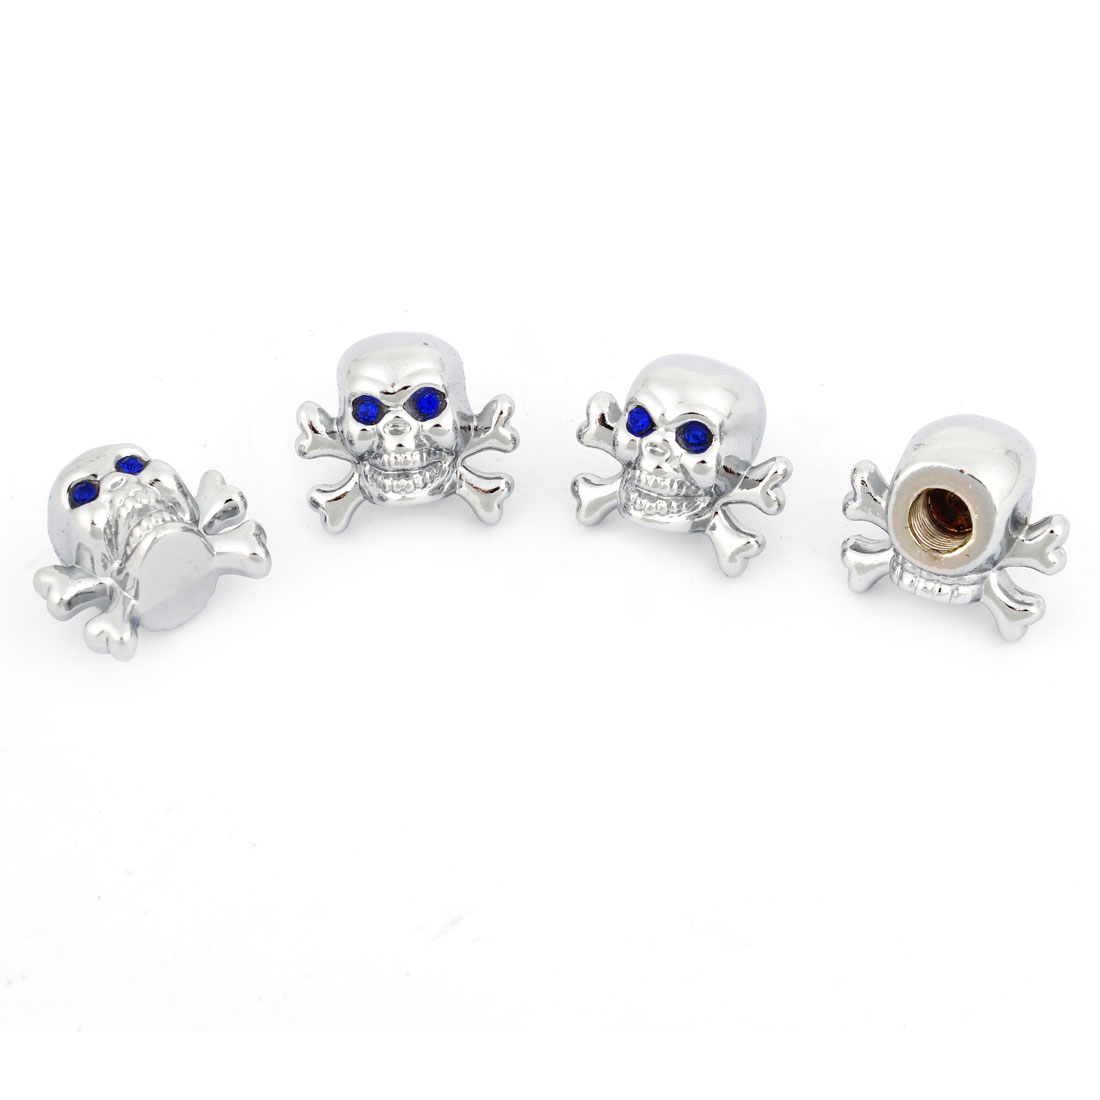 Blue Eyes Evil Skull Car Tyre Valve Dust Caps Stem Covers Silver Tone 4 Pcs